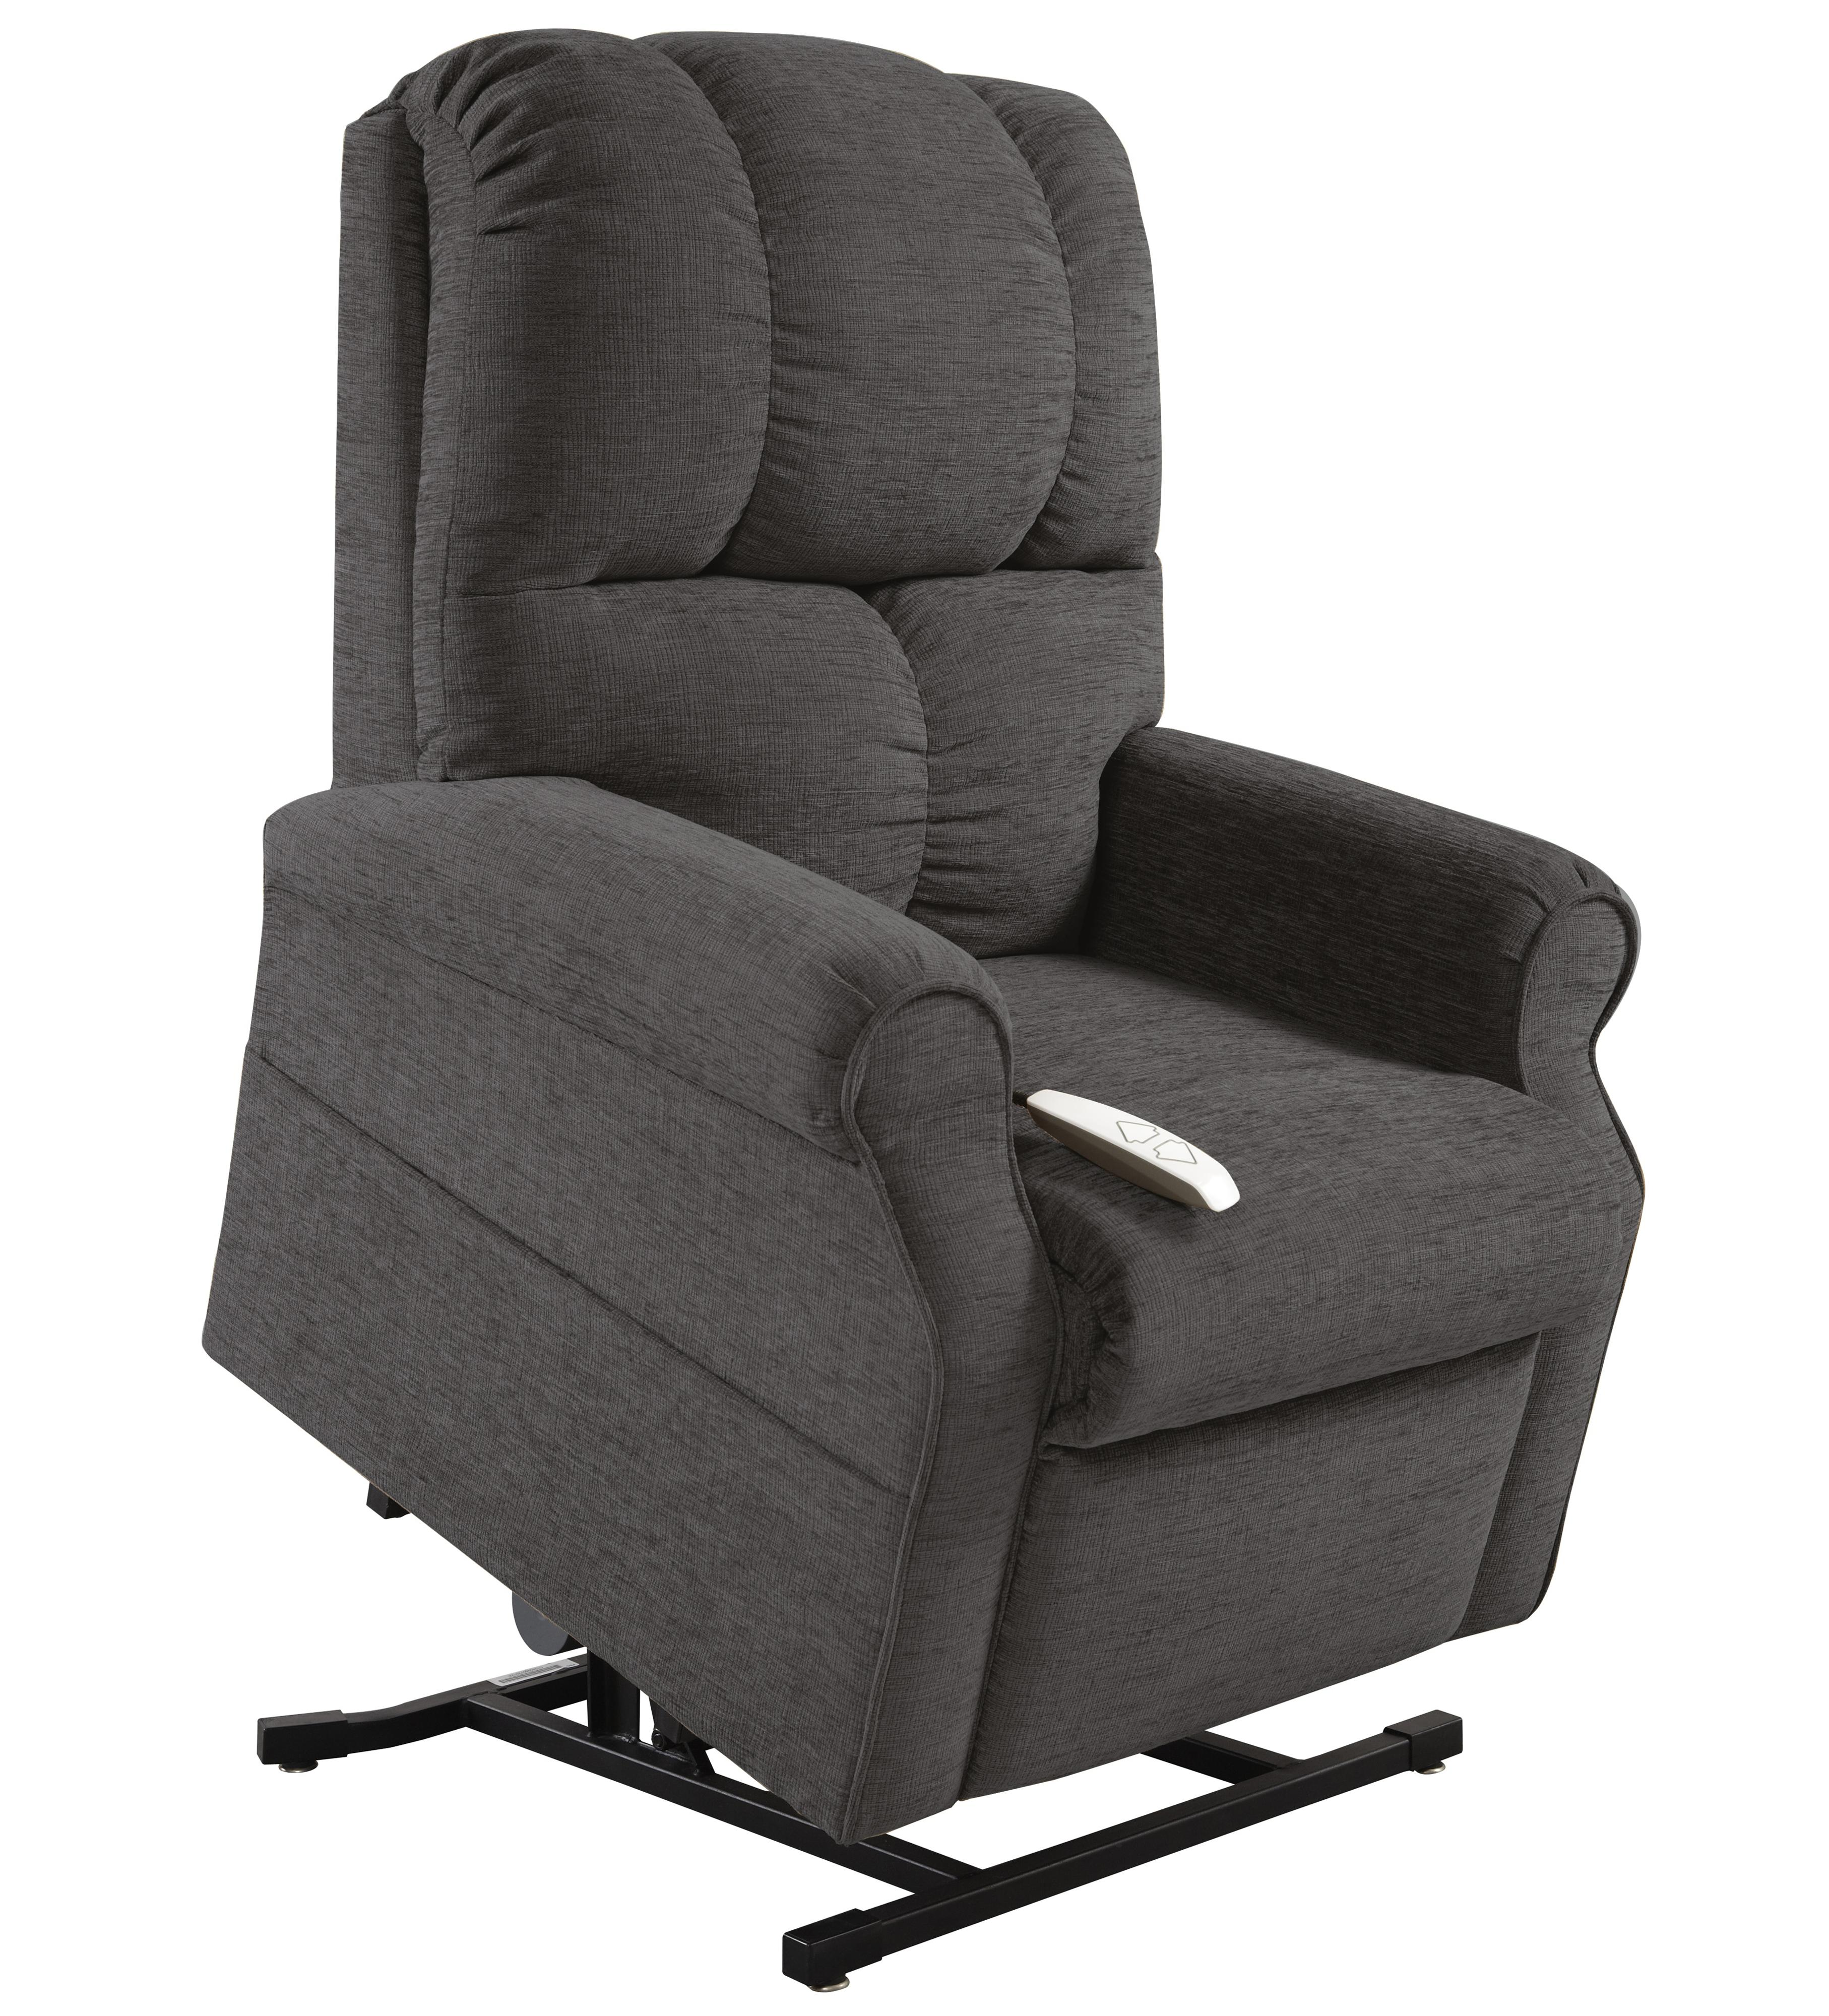 Windermere Lift Chairs 3-Position Reclining Lift Chair with Power - Item Number: AS-2001 Gun Metal